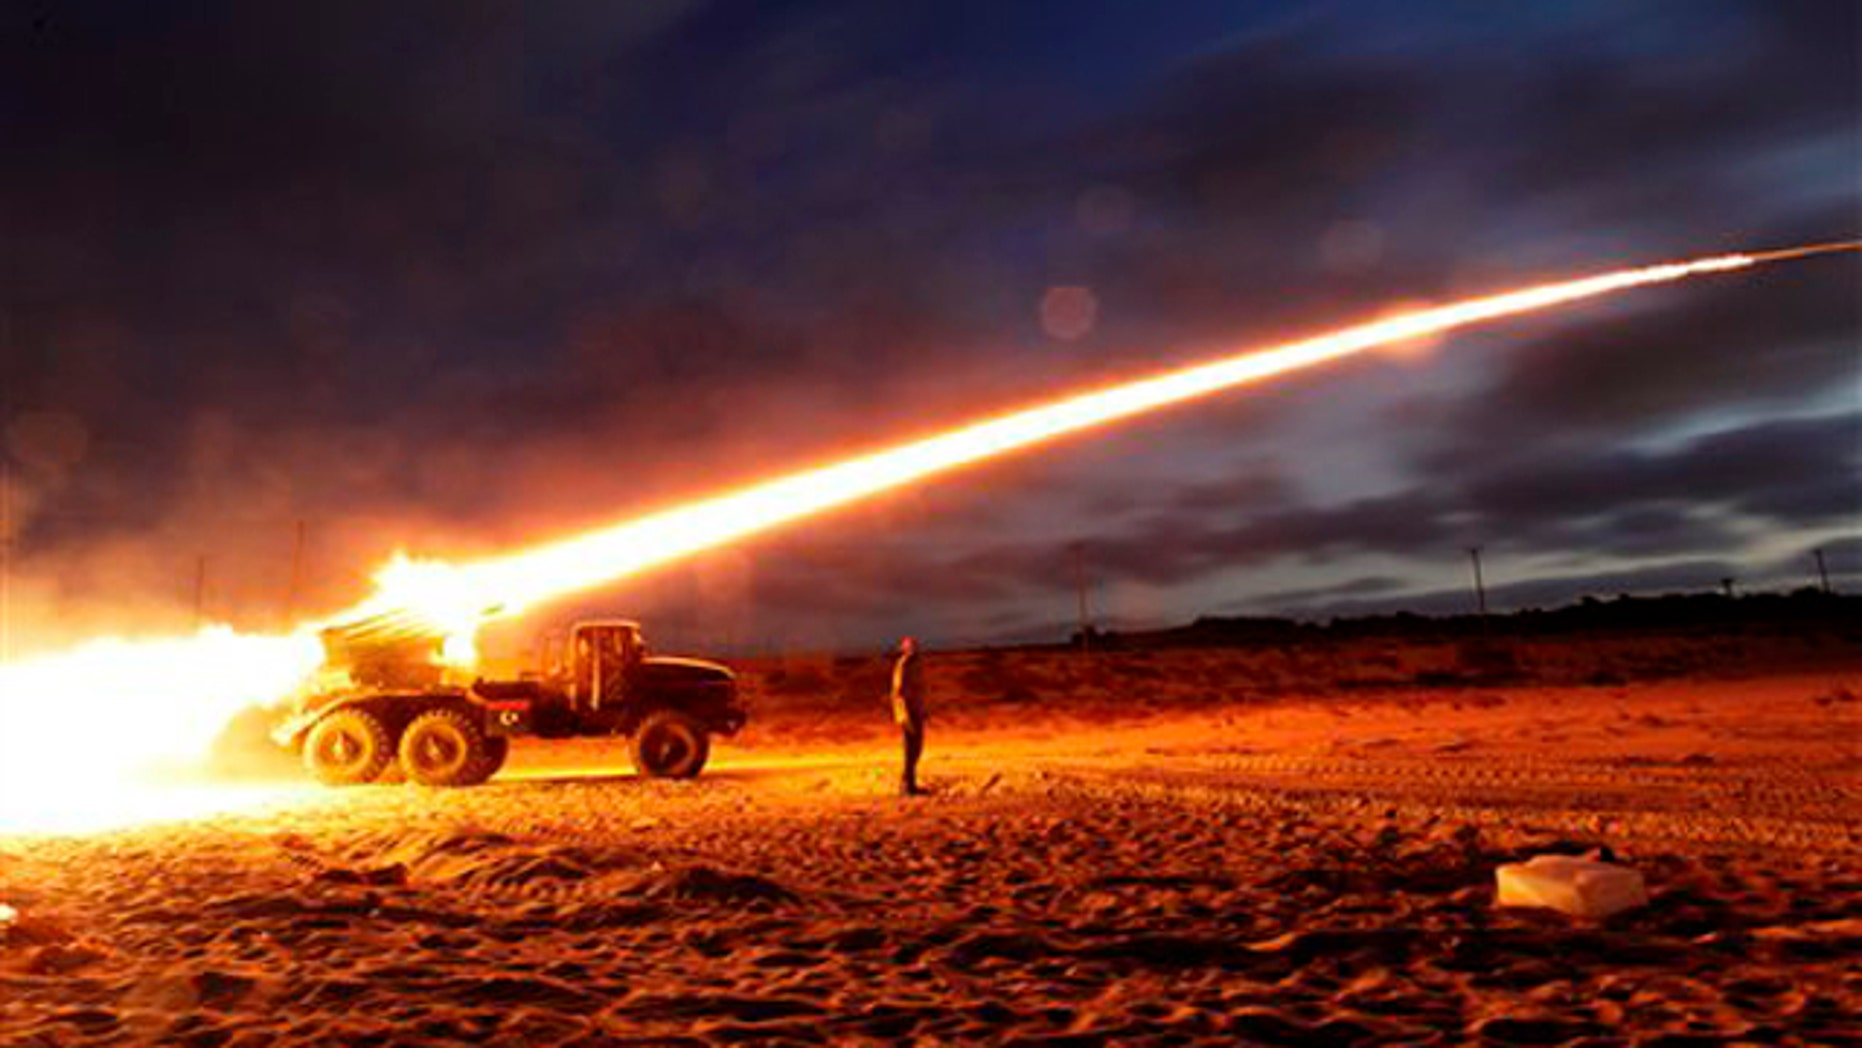 June 20: Rebel fighters fire a rocket at the front line west of Misrata, Libya.